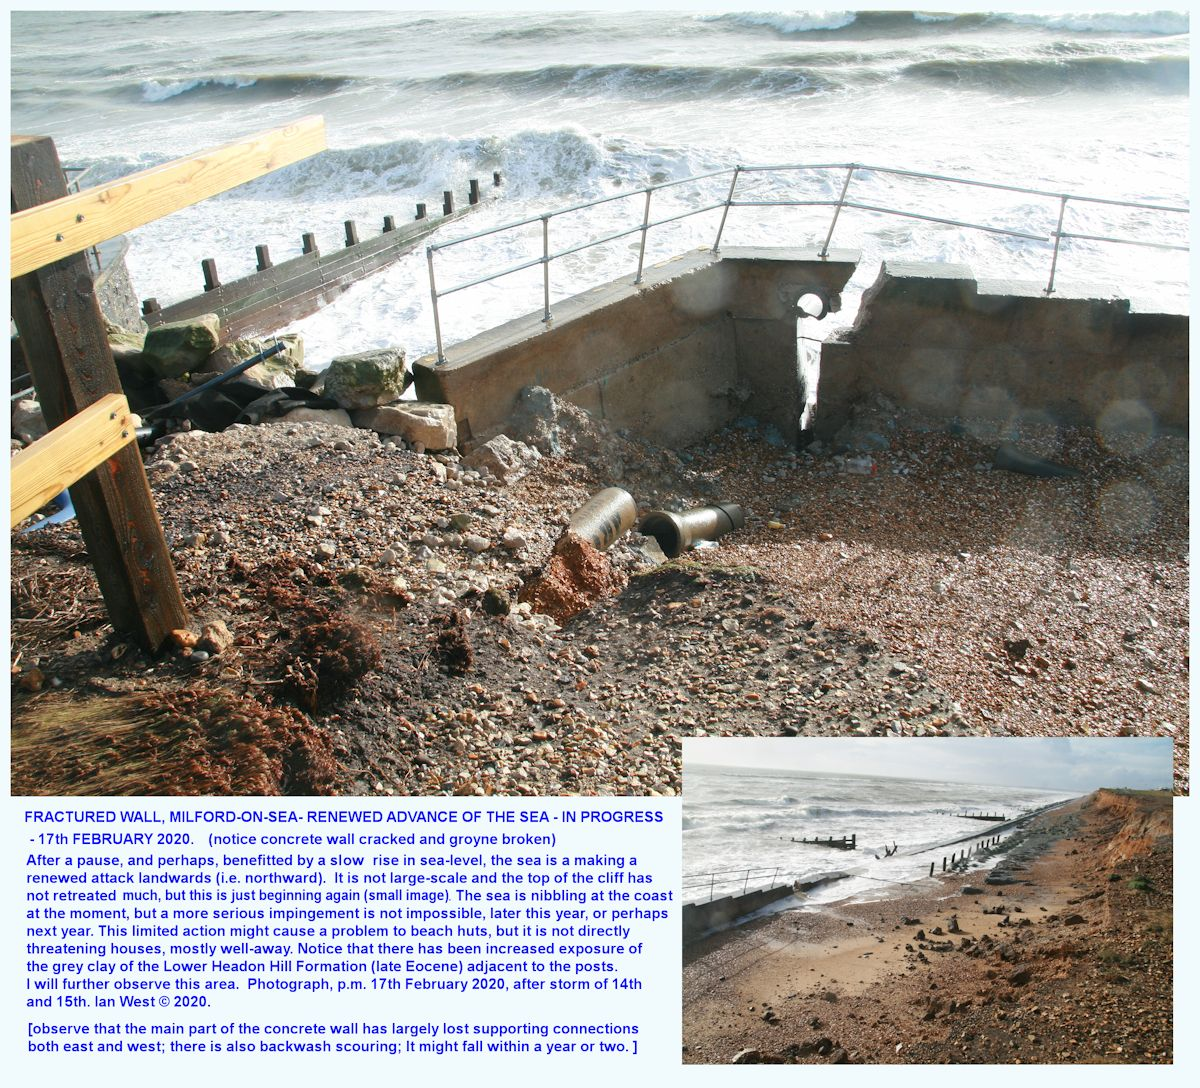 Old concrete sea defences, just west of the White House, Milford-on-Sea are fractured and might, perhaps, be prone to failure as the sea tries to continue its very slow, natural advance, bit-by-bit in a landward direction, seen 17th February 2020 after a major storm on the 14th and 15th February, 2020, Ian West